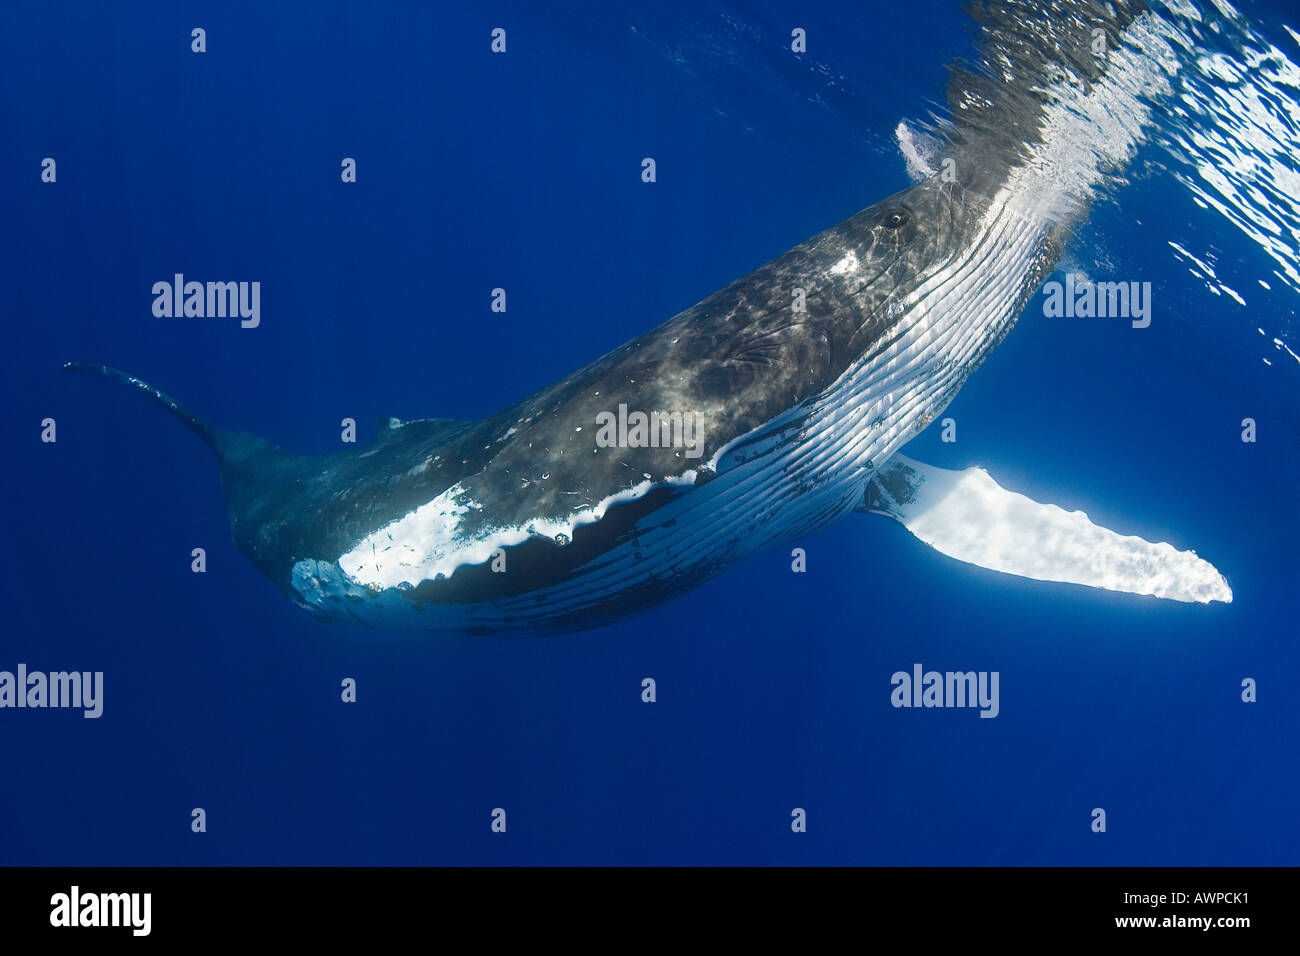 humpback whale, Megaptera novaeangliae, spyhopping, Hawaii, Pacific Ocean - Stock Image